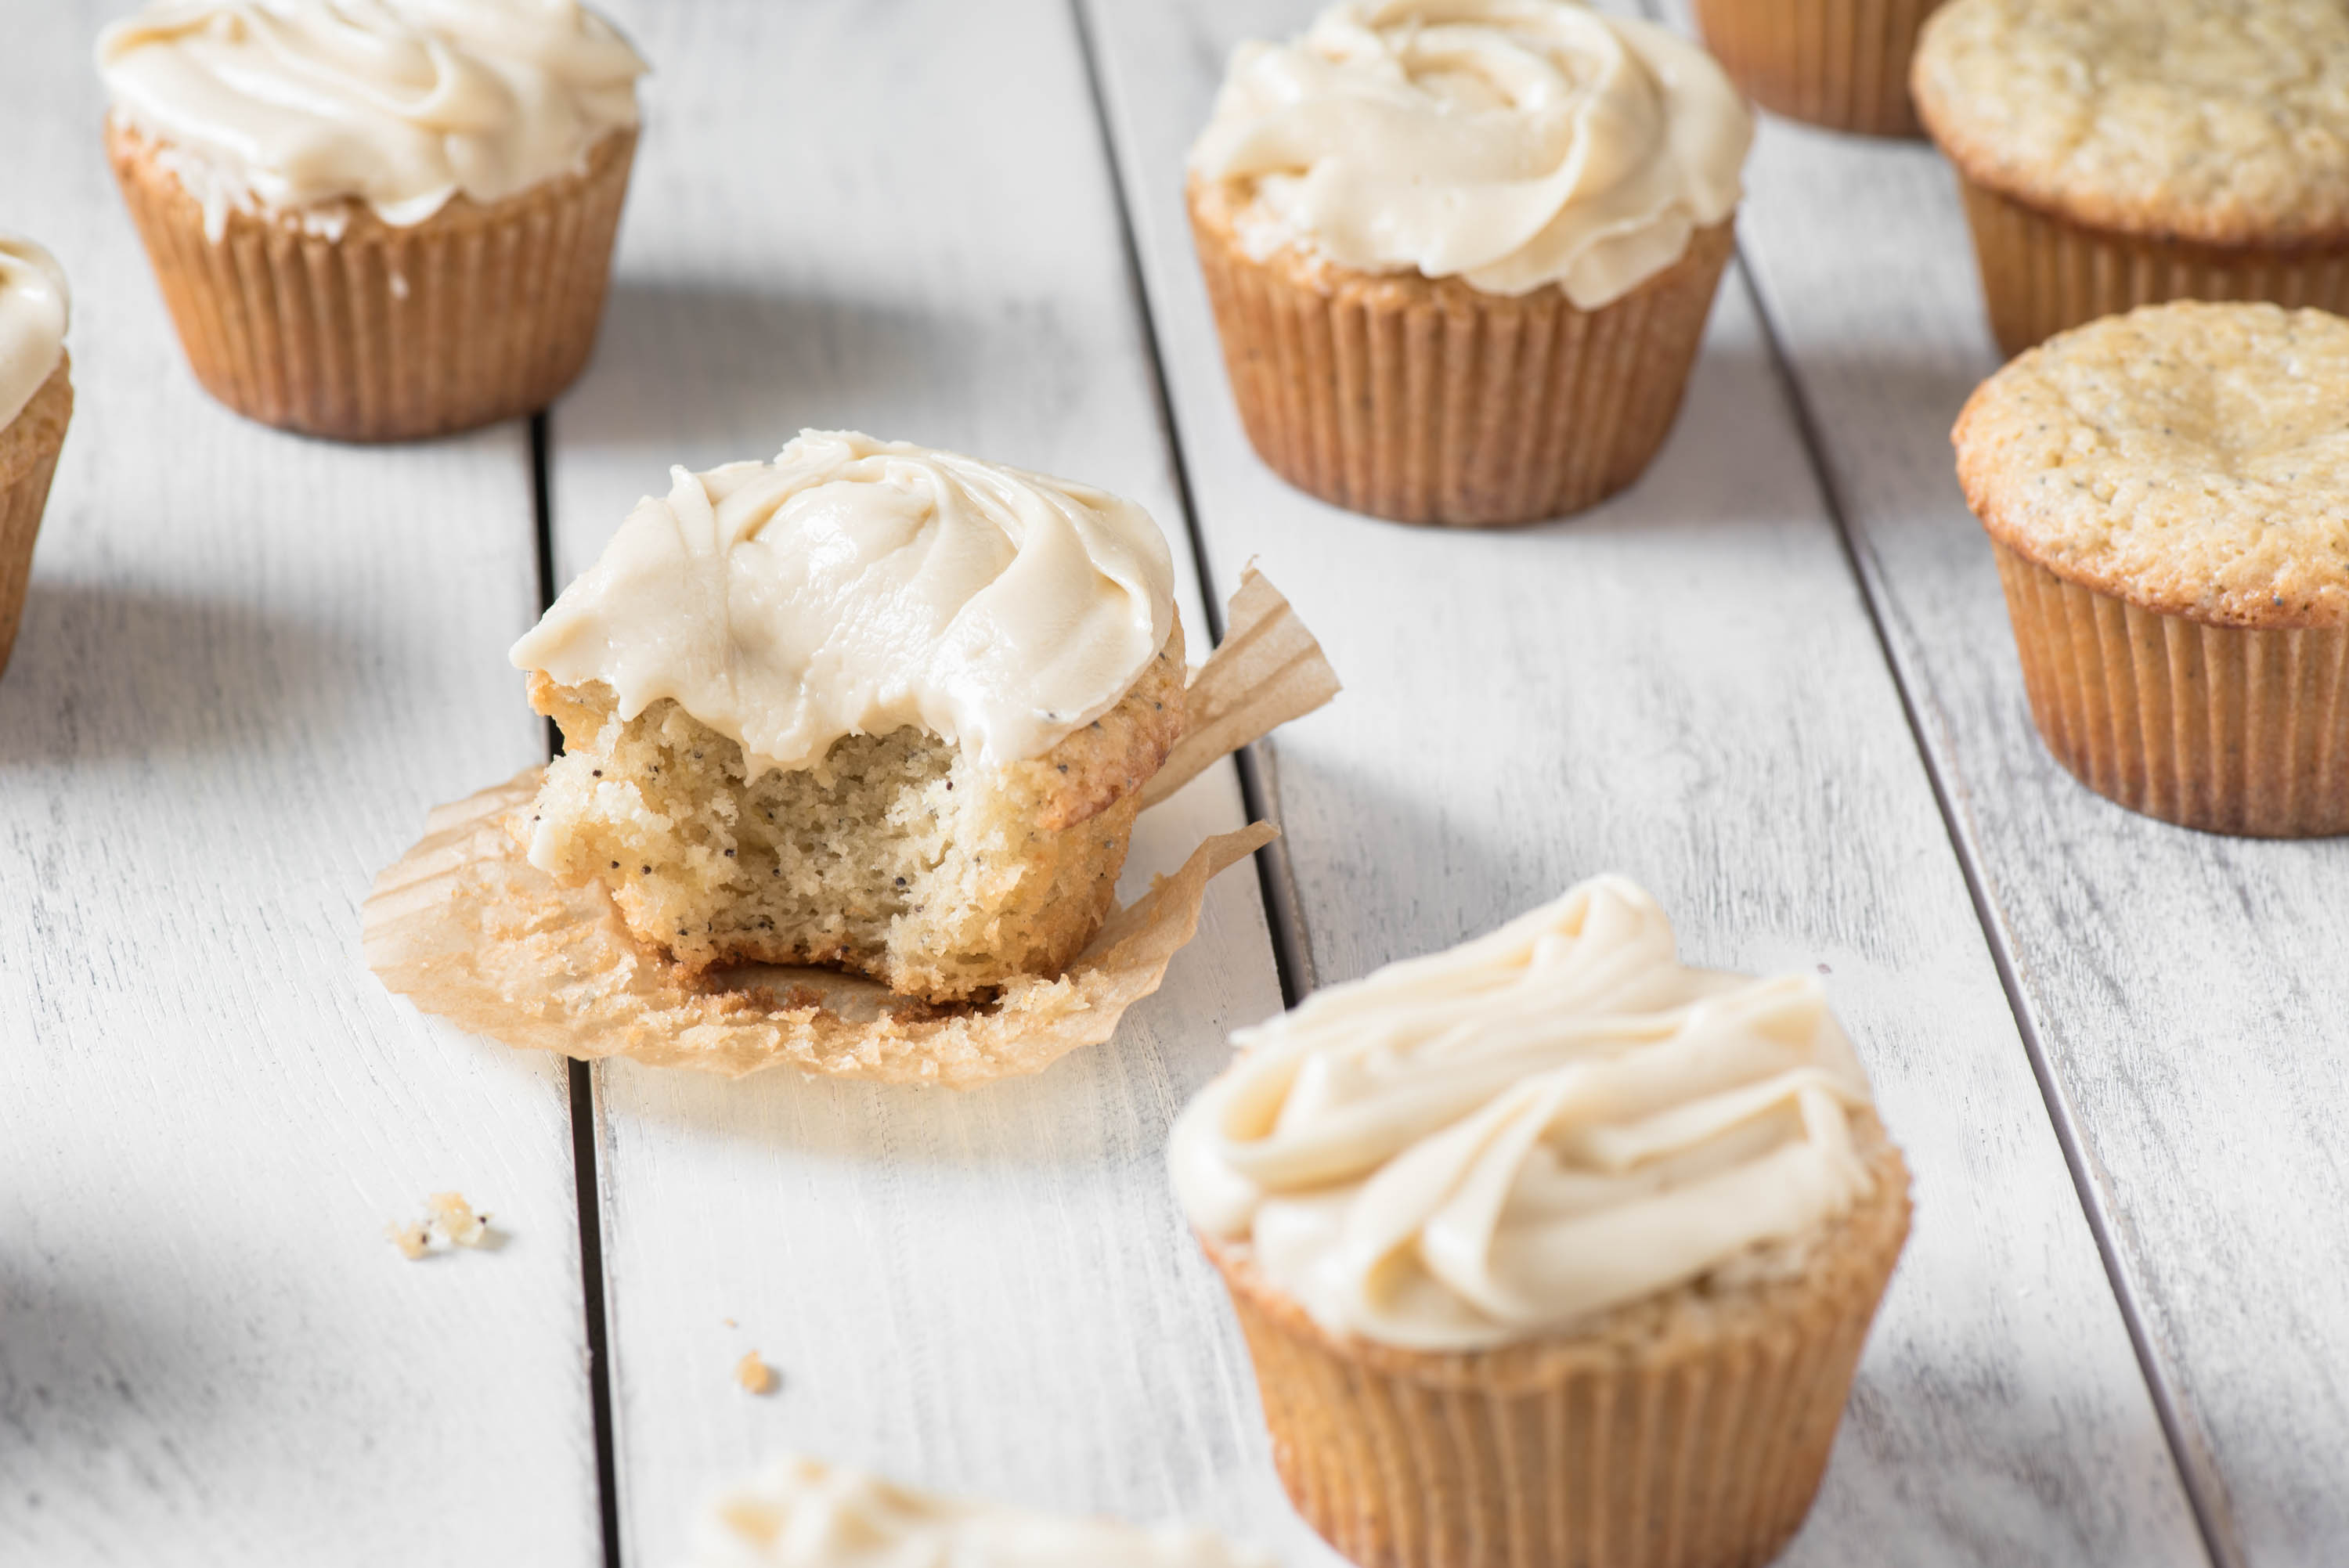 iced cupcake with a bite taken out of it